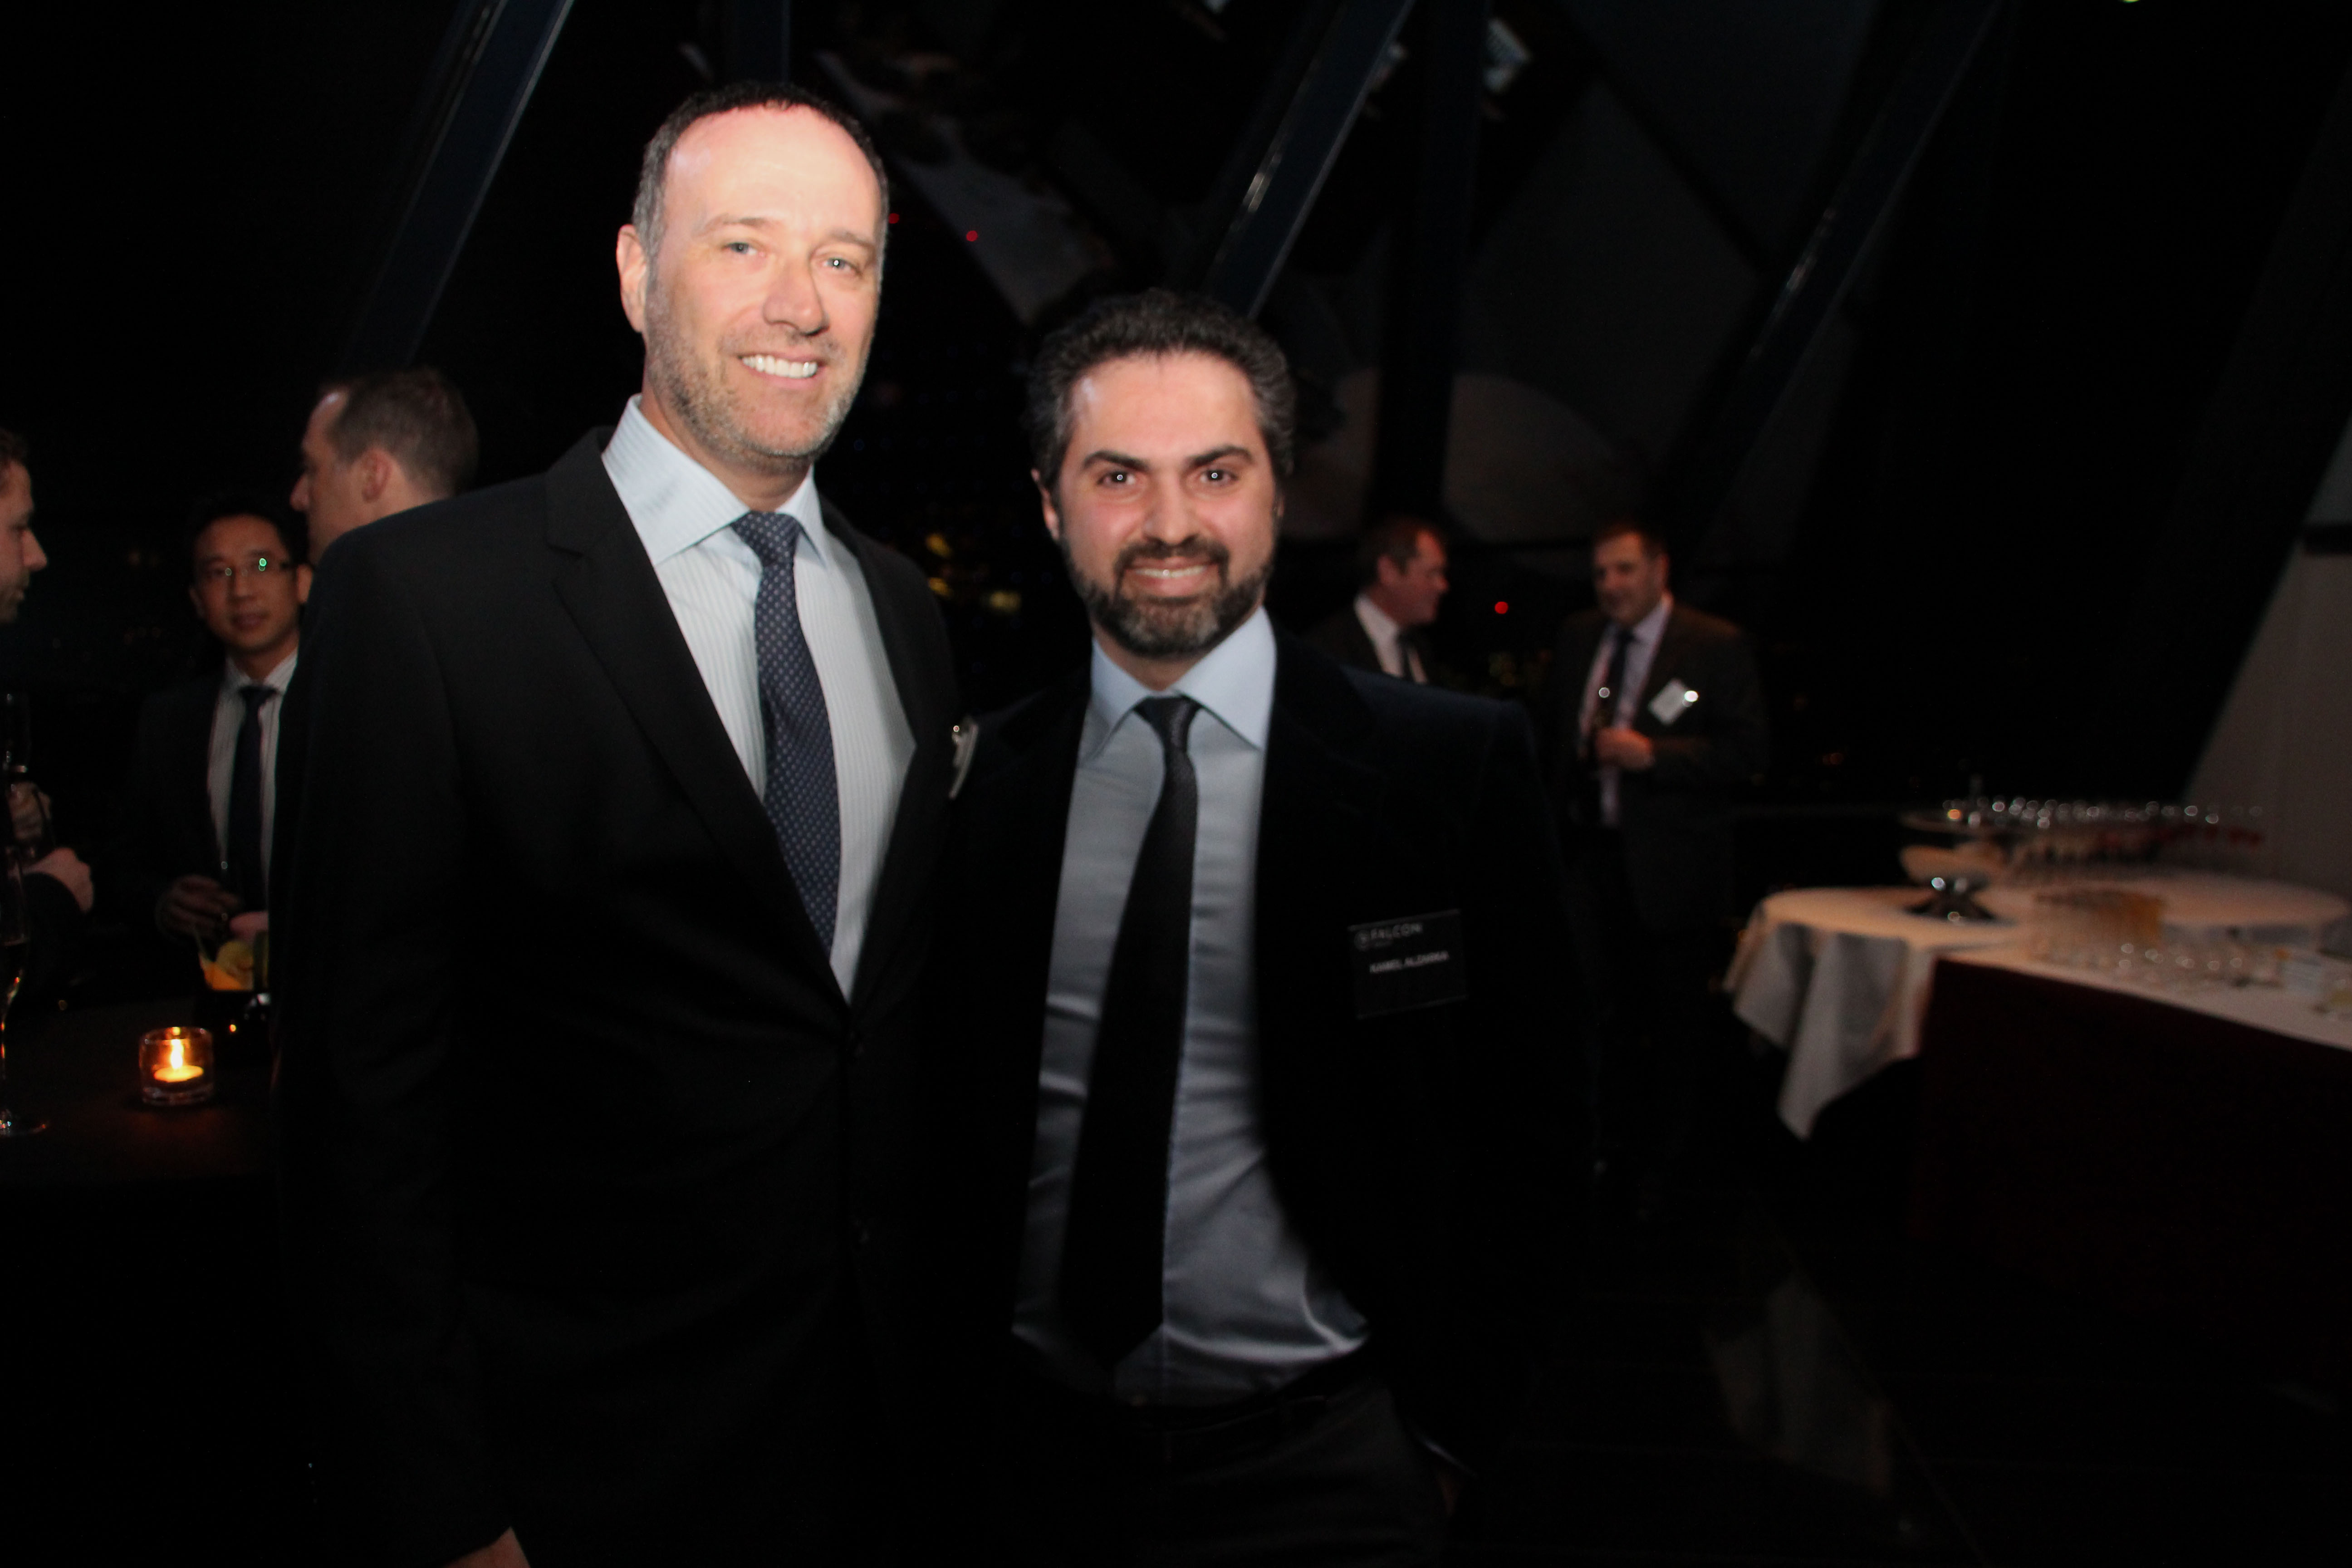 File:Founder Kamel Alzarka pictured next to CEO of Falcon